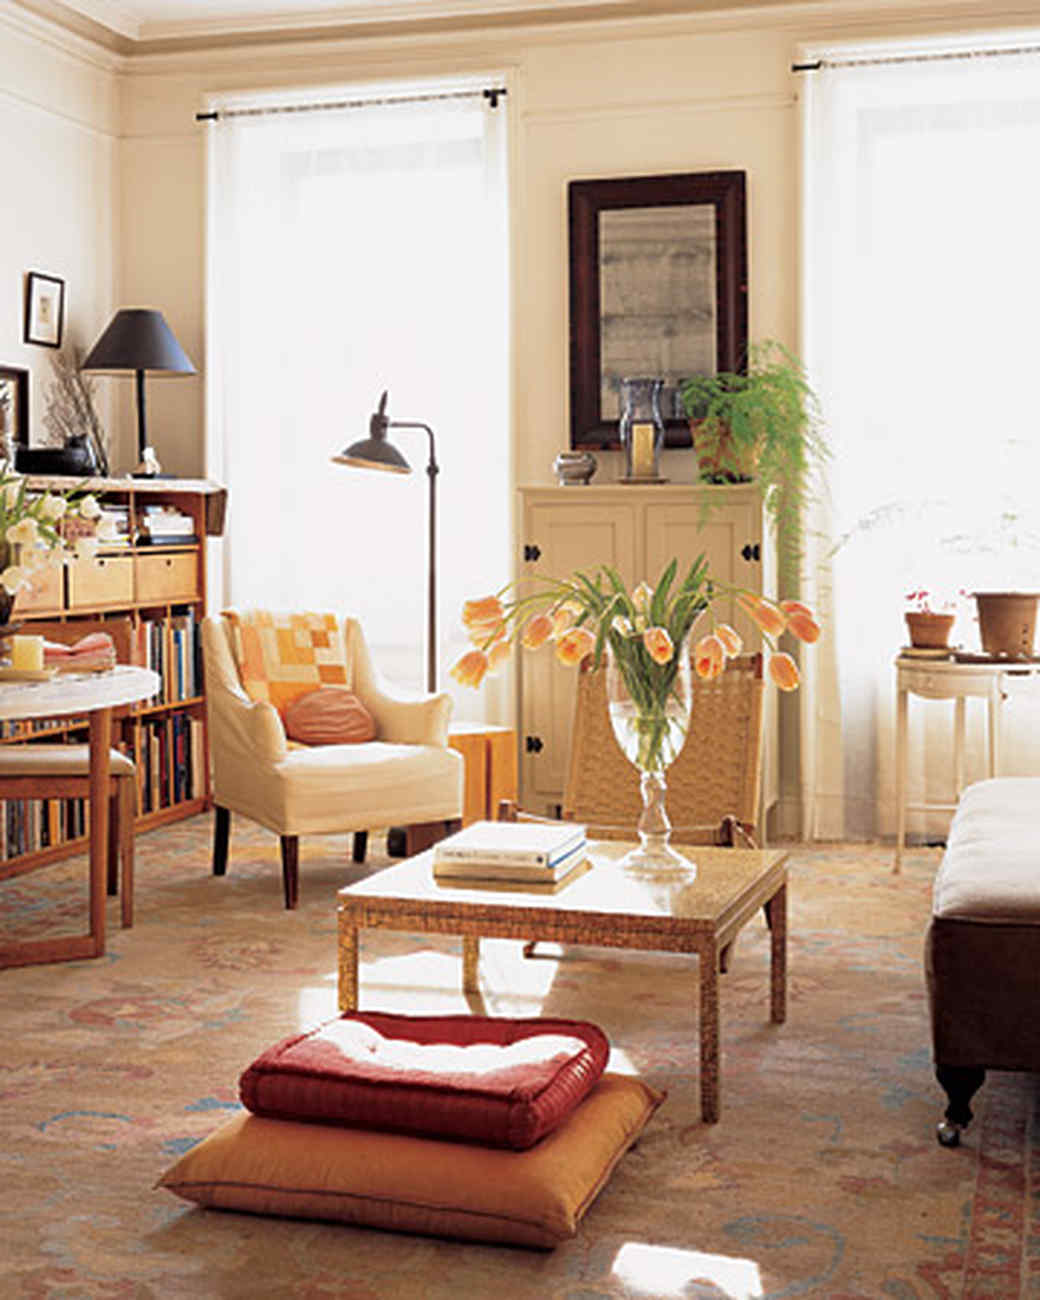 The Living Room Home Tour  Brooklyn Apartment Martha Stewart